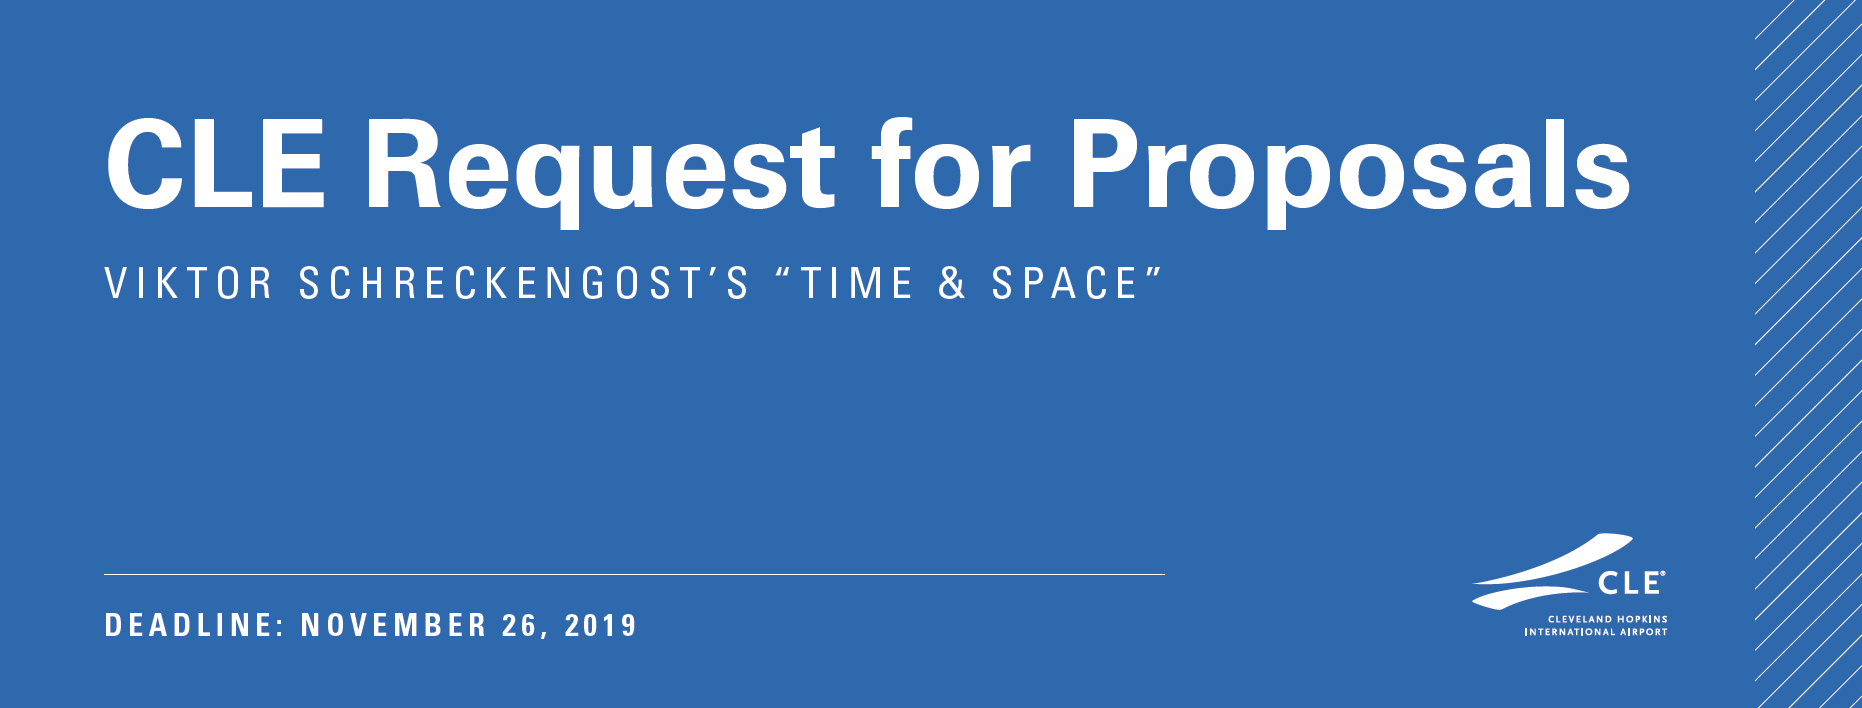 """Call for Proposals: Viktor Schreckengost's """"Time & Space"""""""